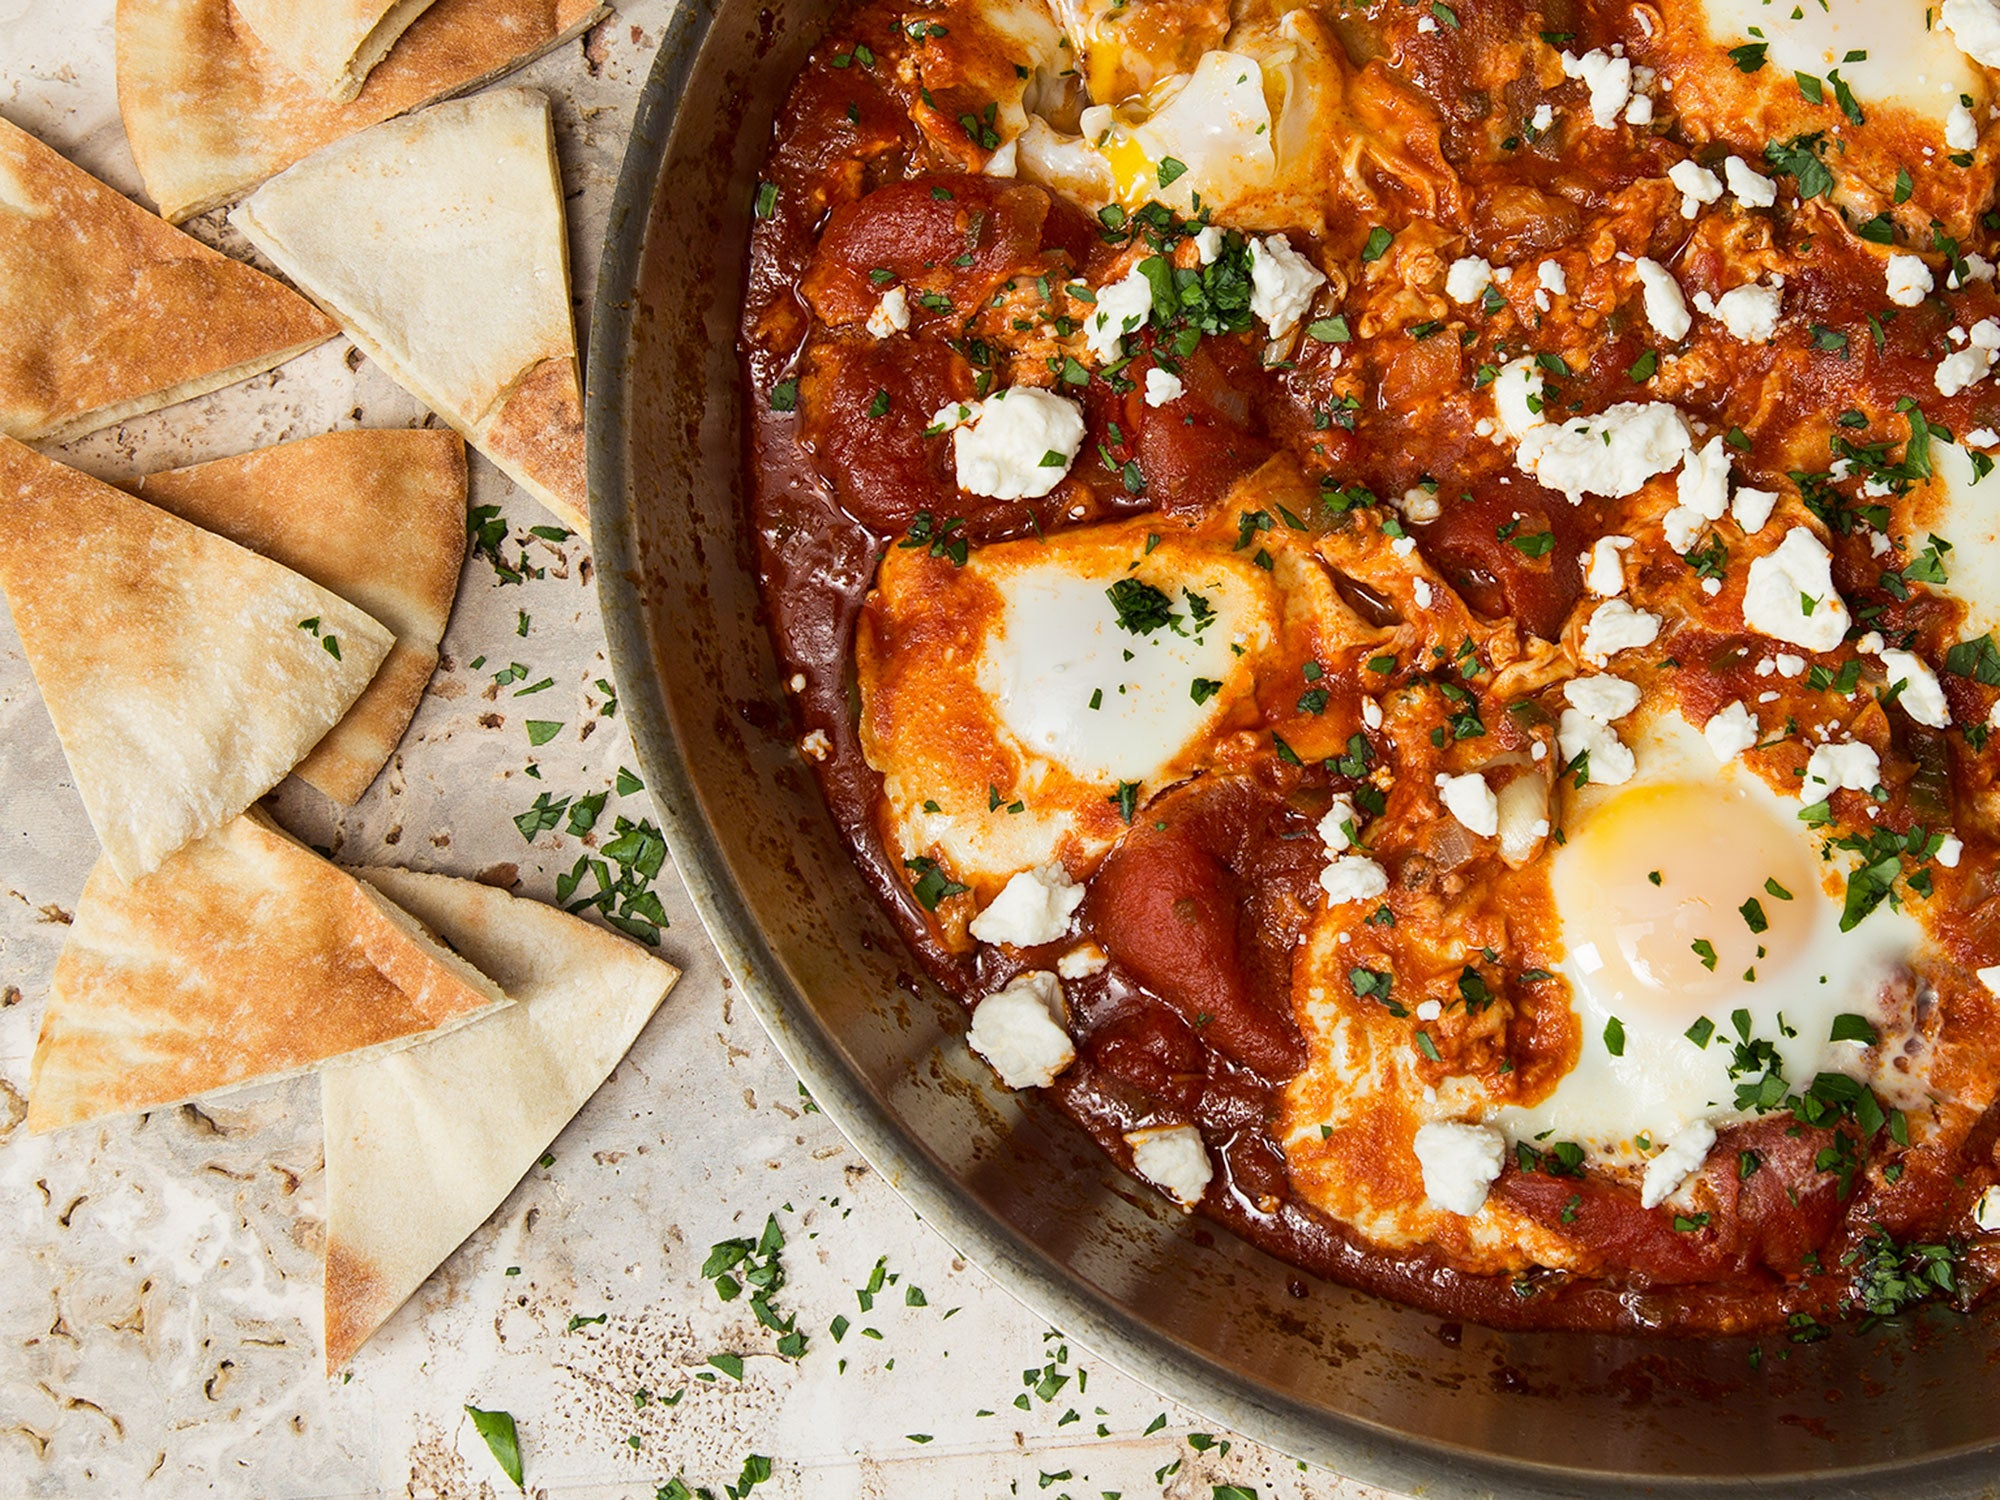 EGGS POACHED IN TOMATO SAUCE